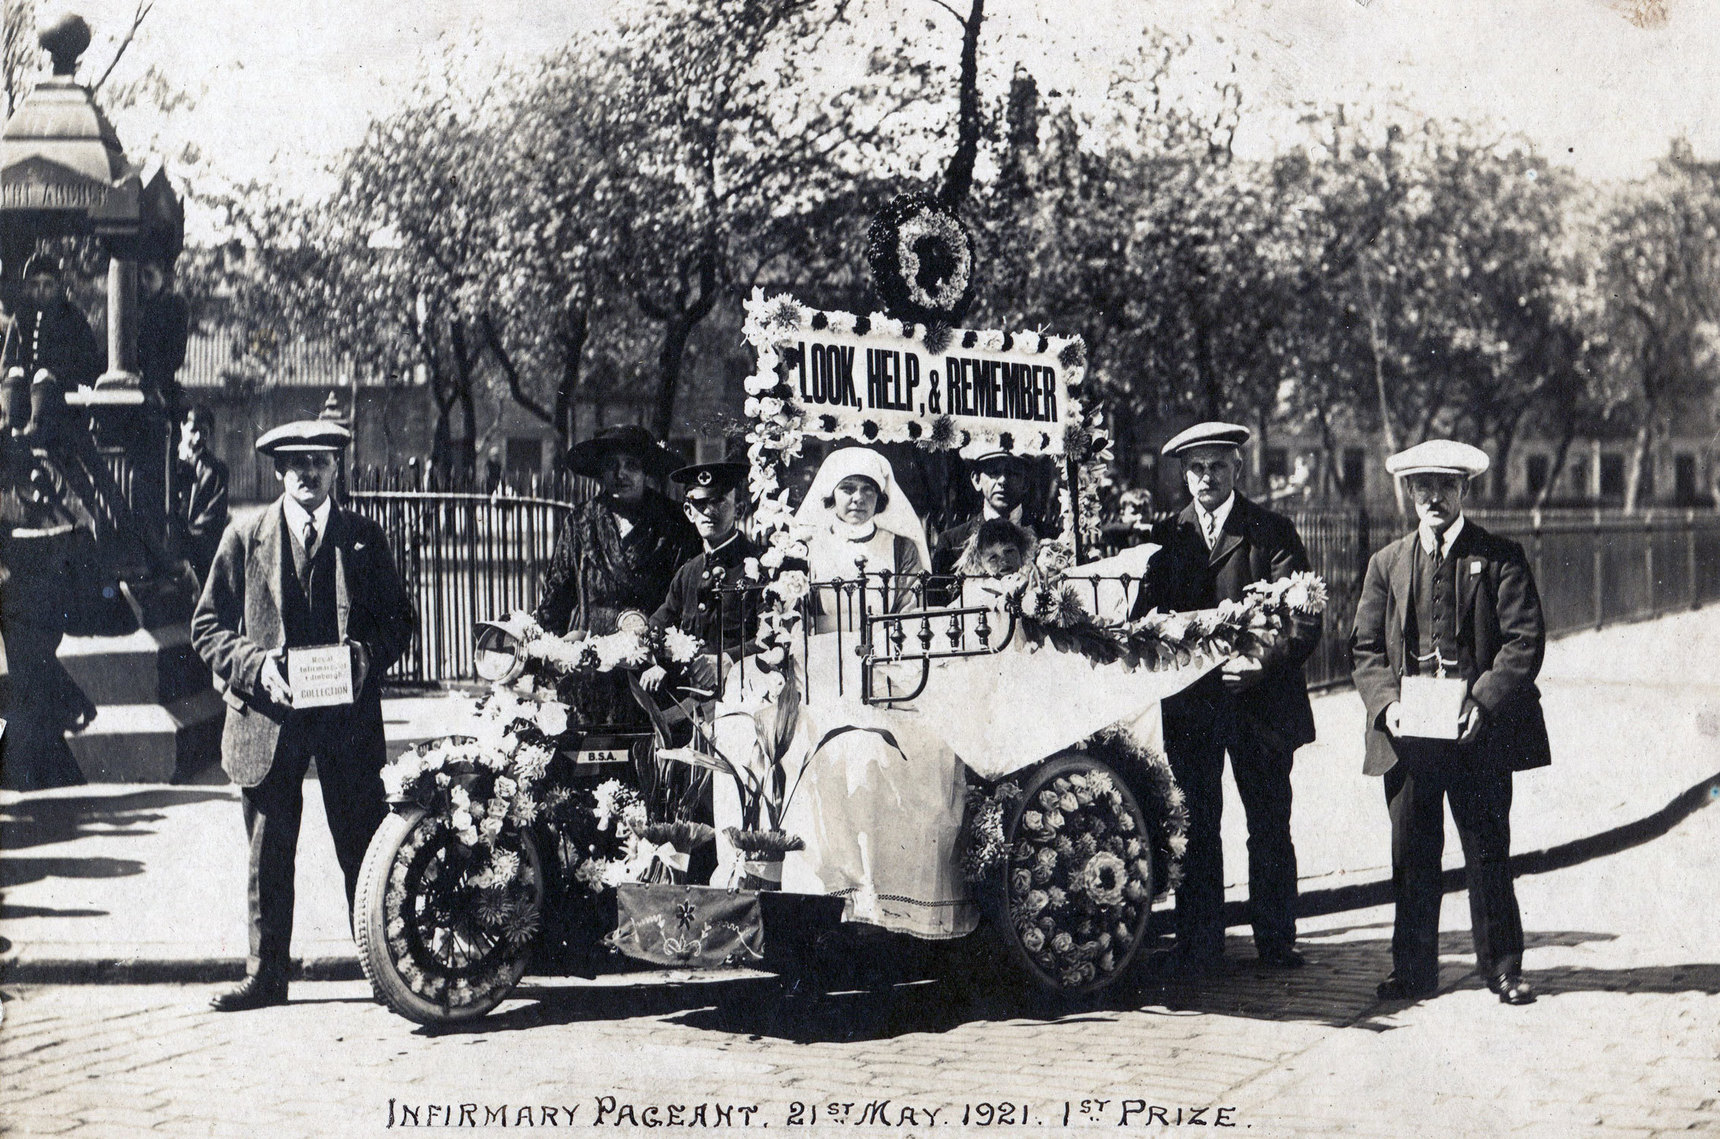 Edinburgh Infirmary Pageant First Prize, 21 May 1921